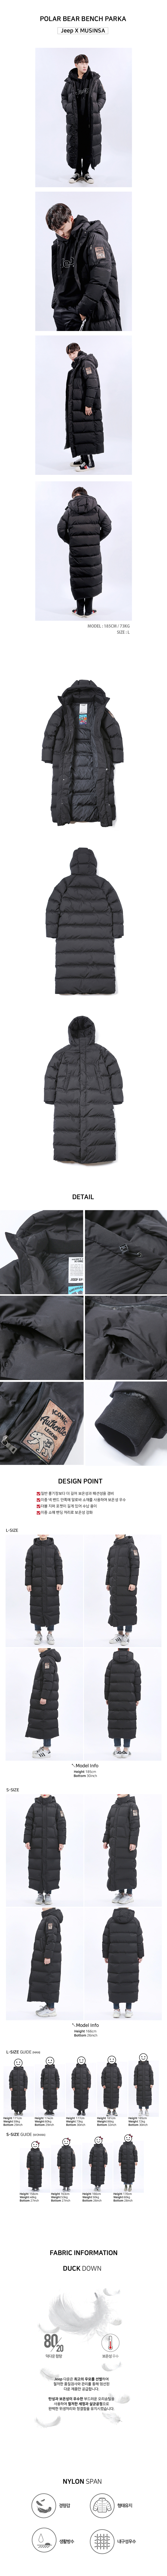 지프(JEEP) Polar Bear Bench Parka (JJ4JPU422BK)